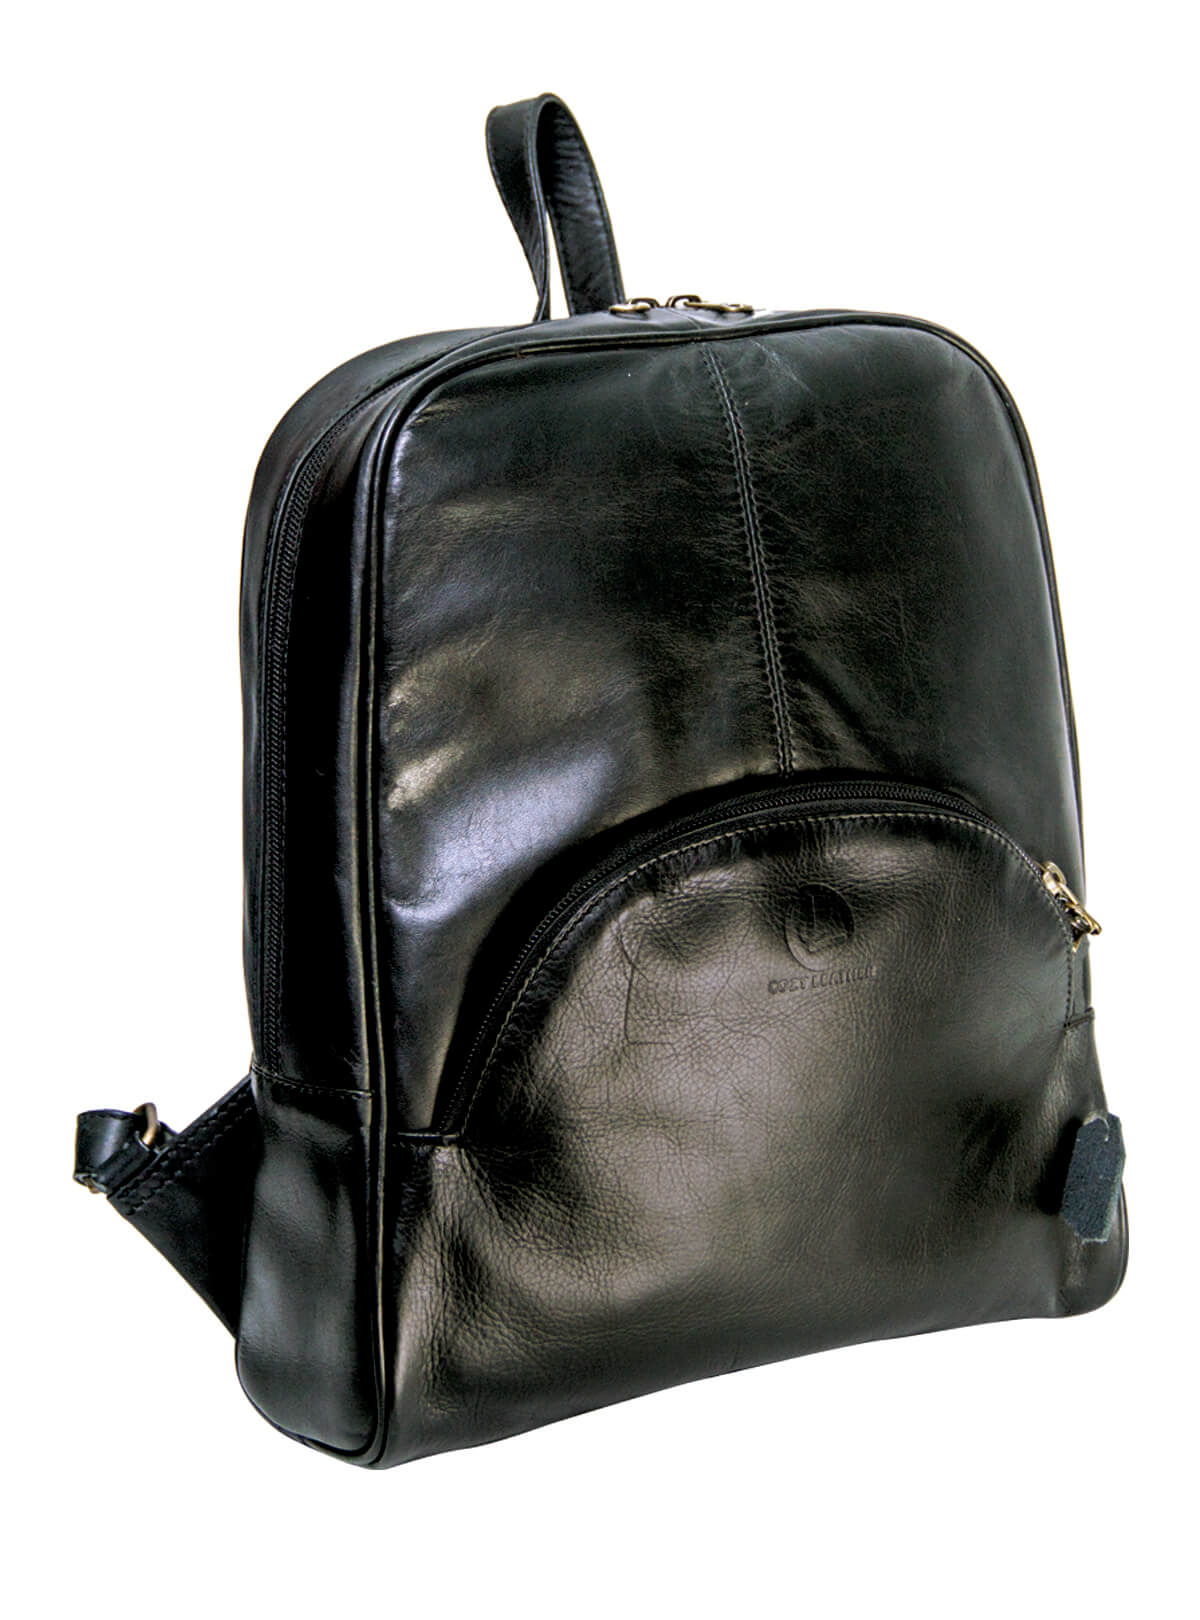 Cardin Green Leather Small Backpack